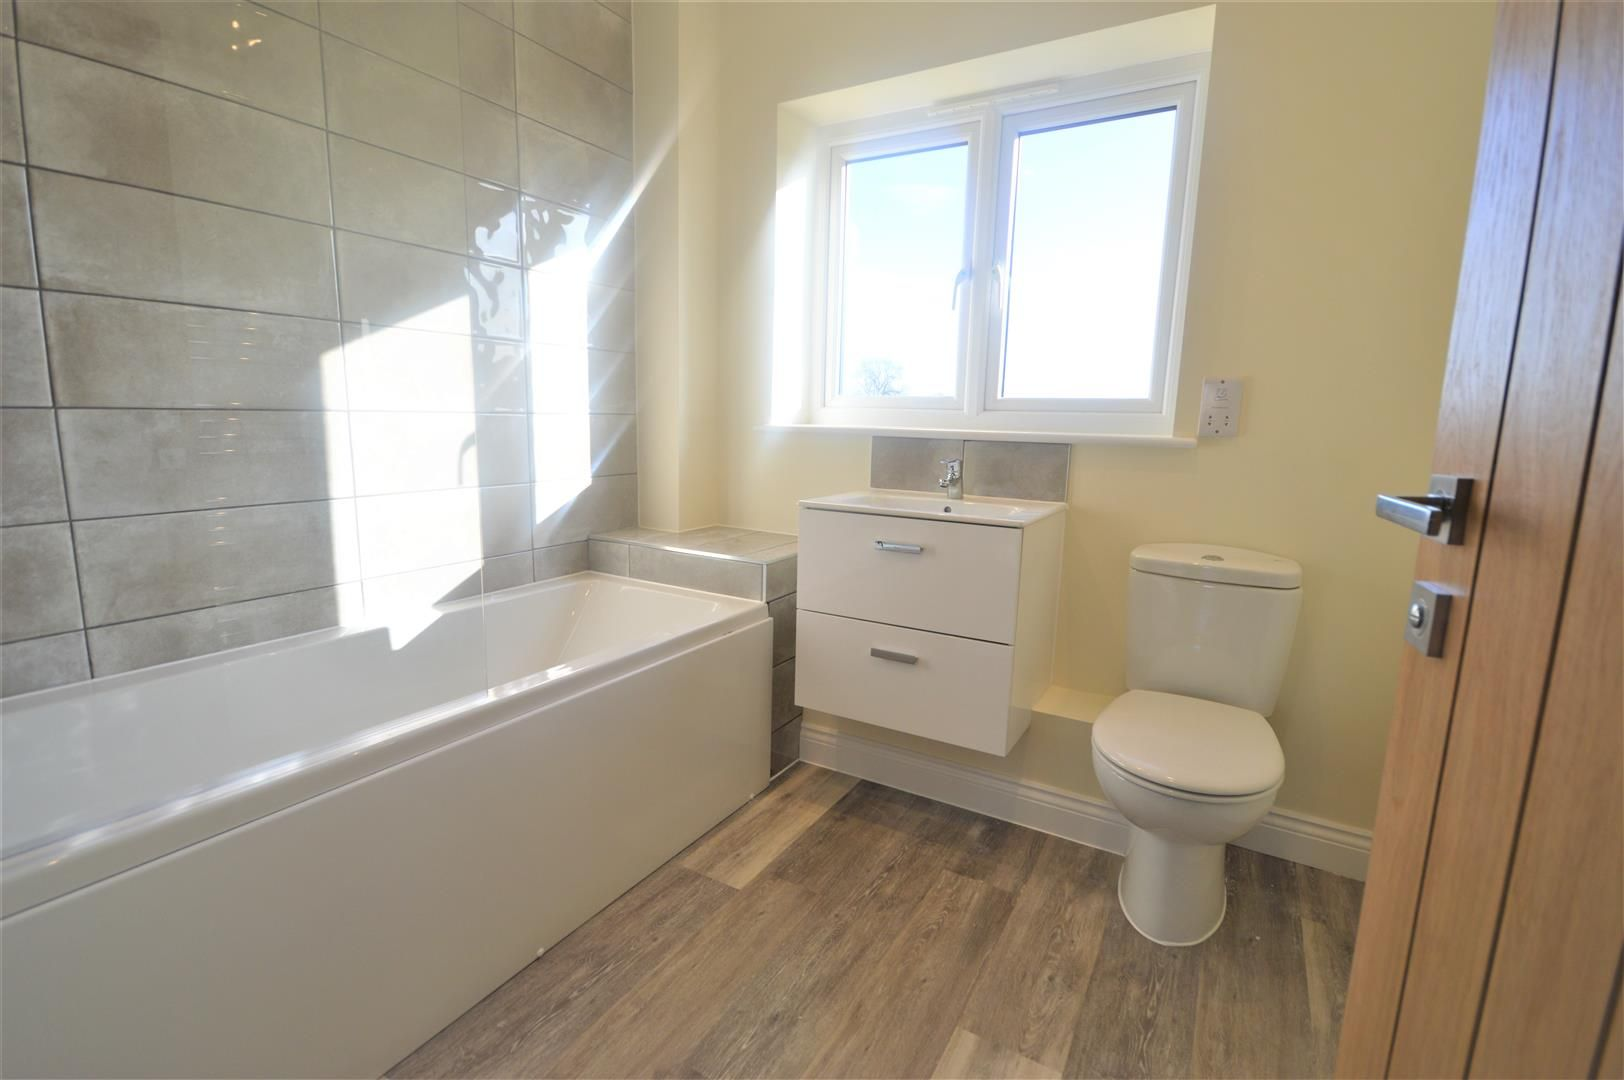 3 bed semi-detached for sale in Kingsland 6